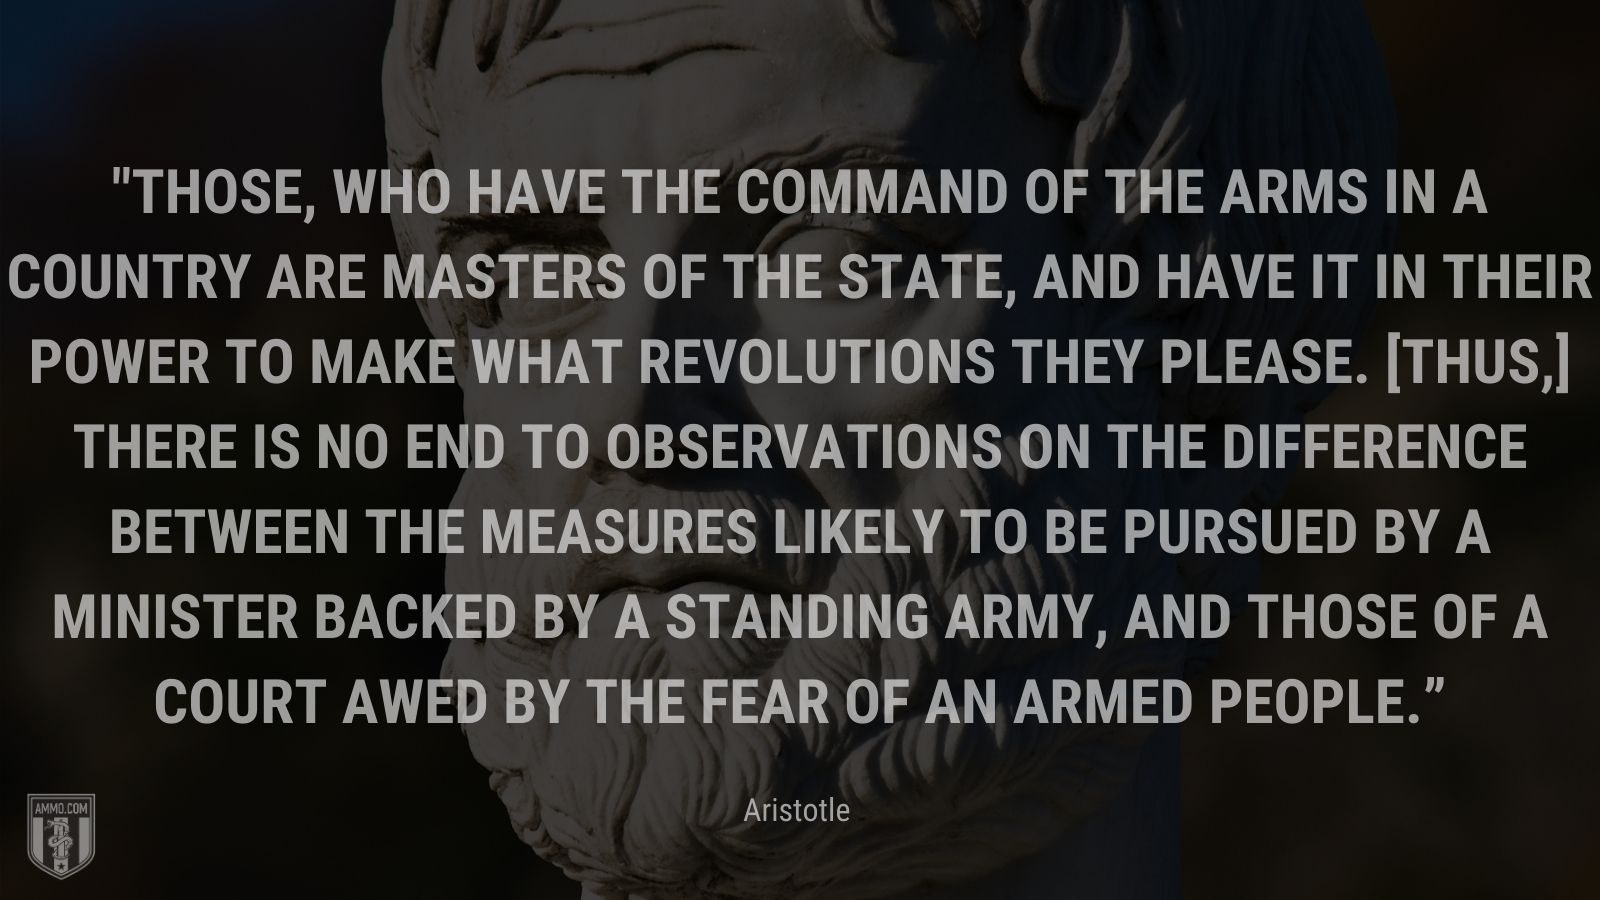 """""""Those, who have the command of the arms in a country are masters of the state, and have it in their power to make what revolutions they please. [Thus,] there is no end to observations on the difference between the measures likely to be pursued by a minister backed by a standing army, and those of a court awed by the fear of an armed people."""" - Aristotle"""